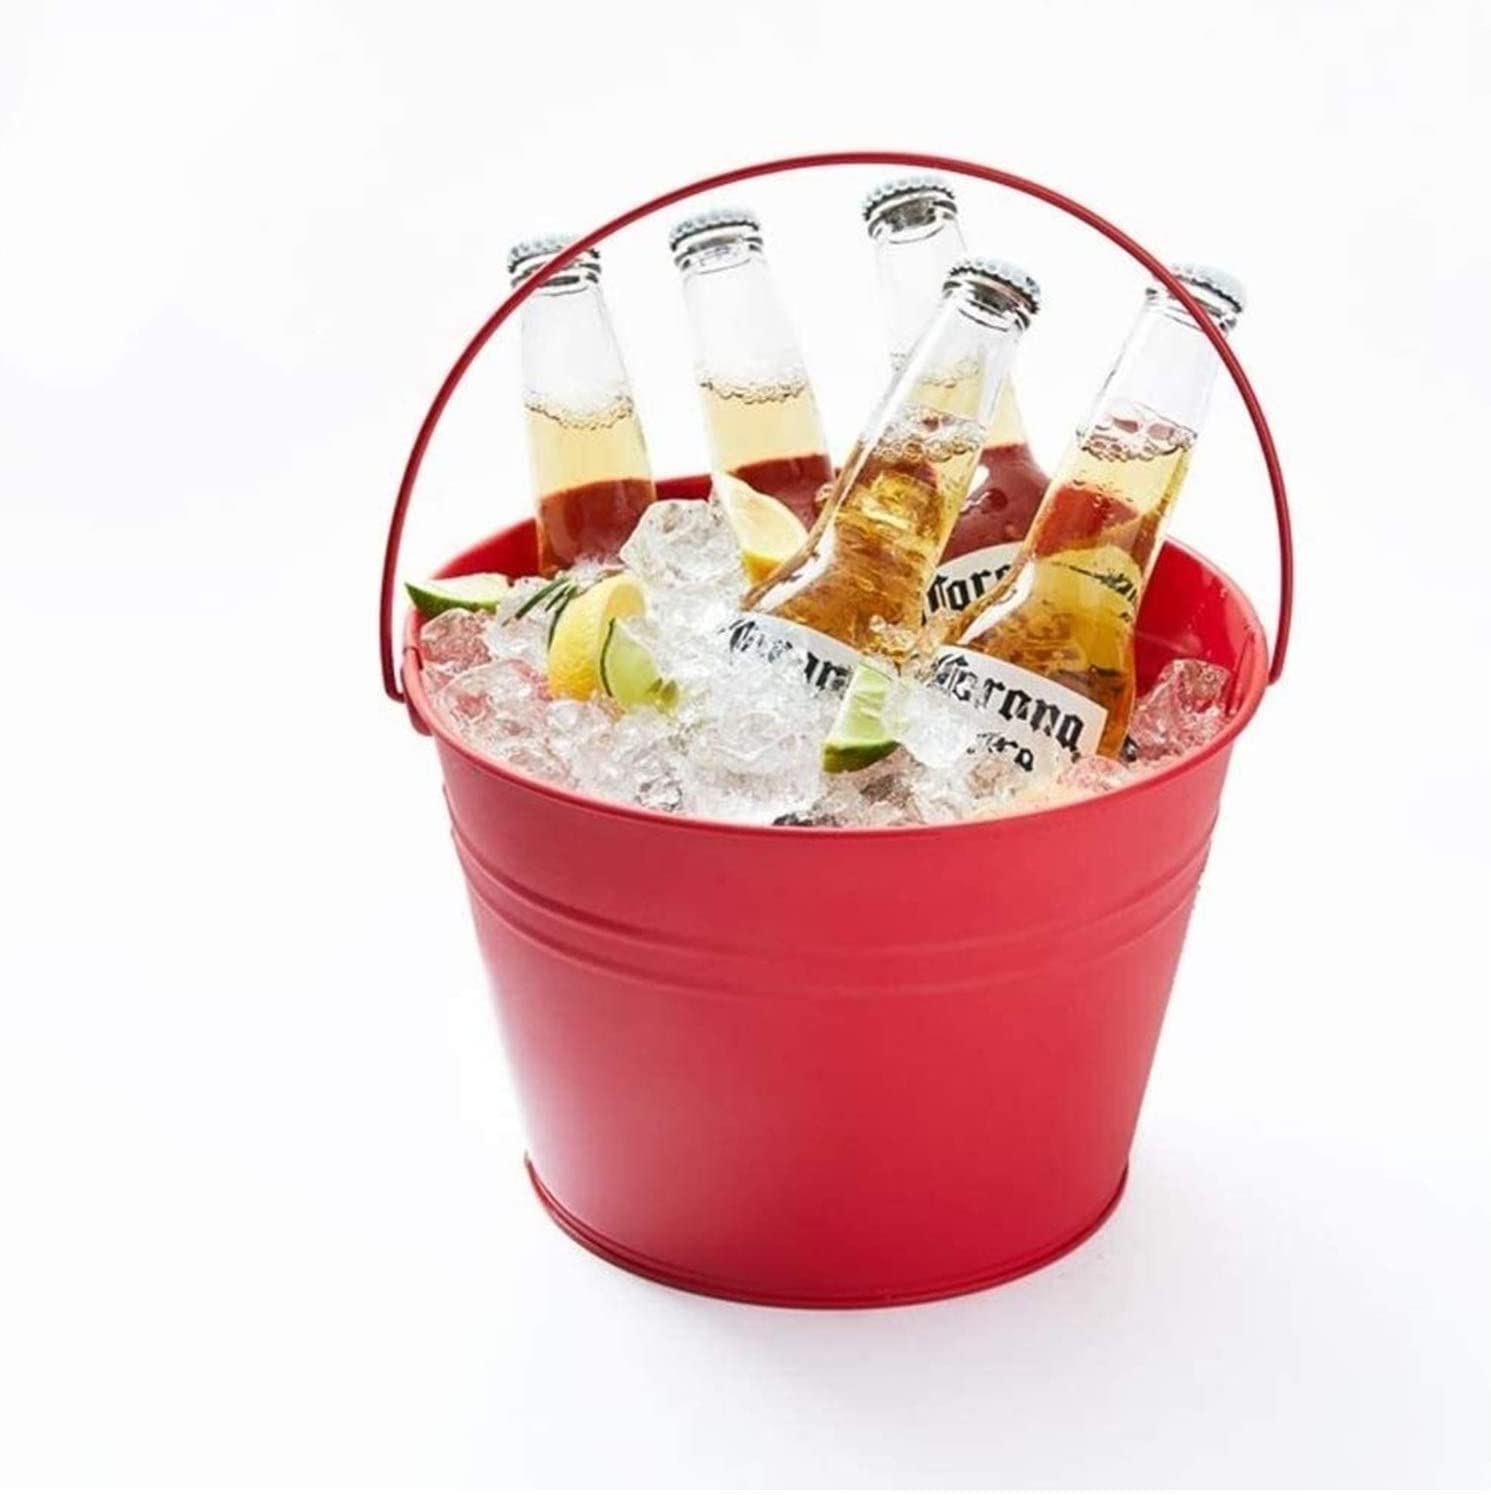 Portable Wine Bucket Party Tub Metal Ice Bucket, Insulated Ice Beverage Tub With Handle, Champagne Ice Cubes Container Wine Chiller For Bar-red 17x17x25cm(7x7x10inch) 1226